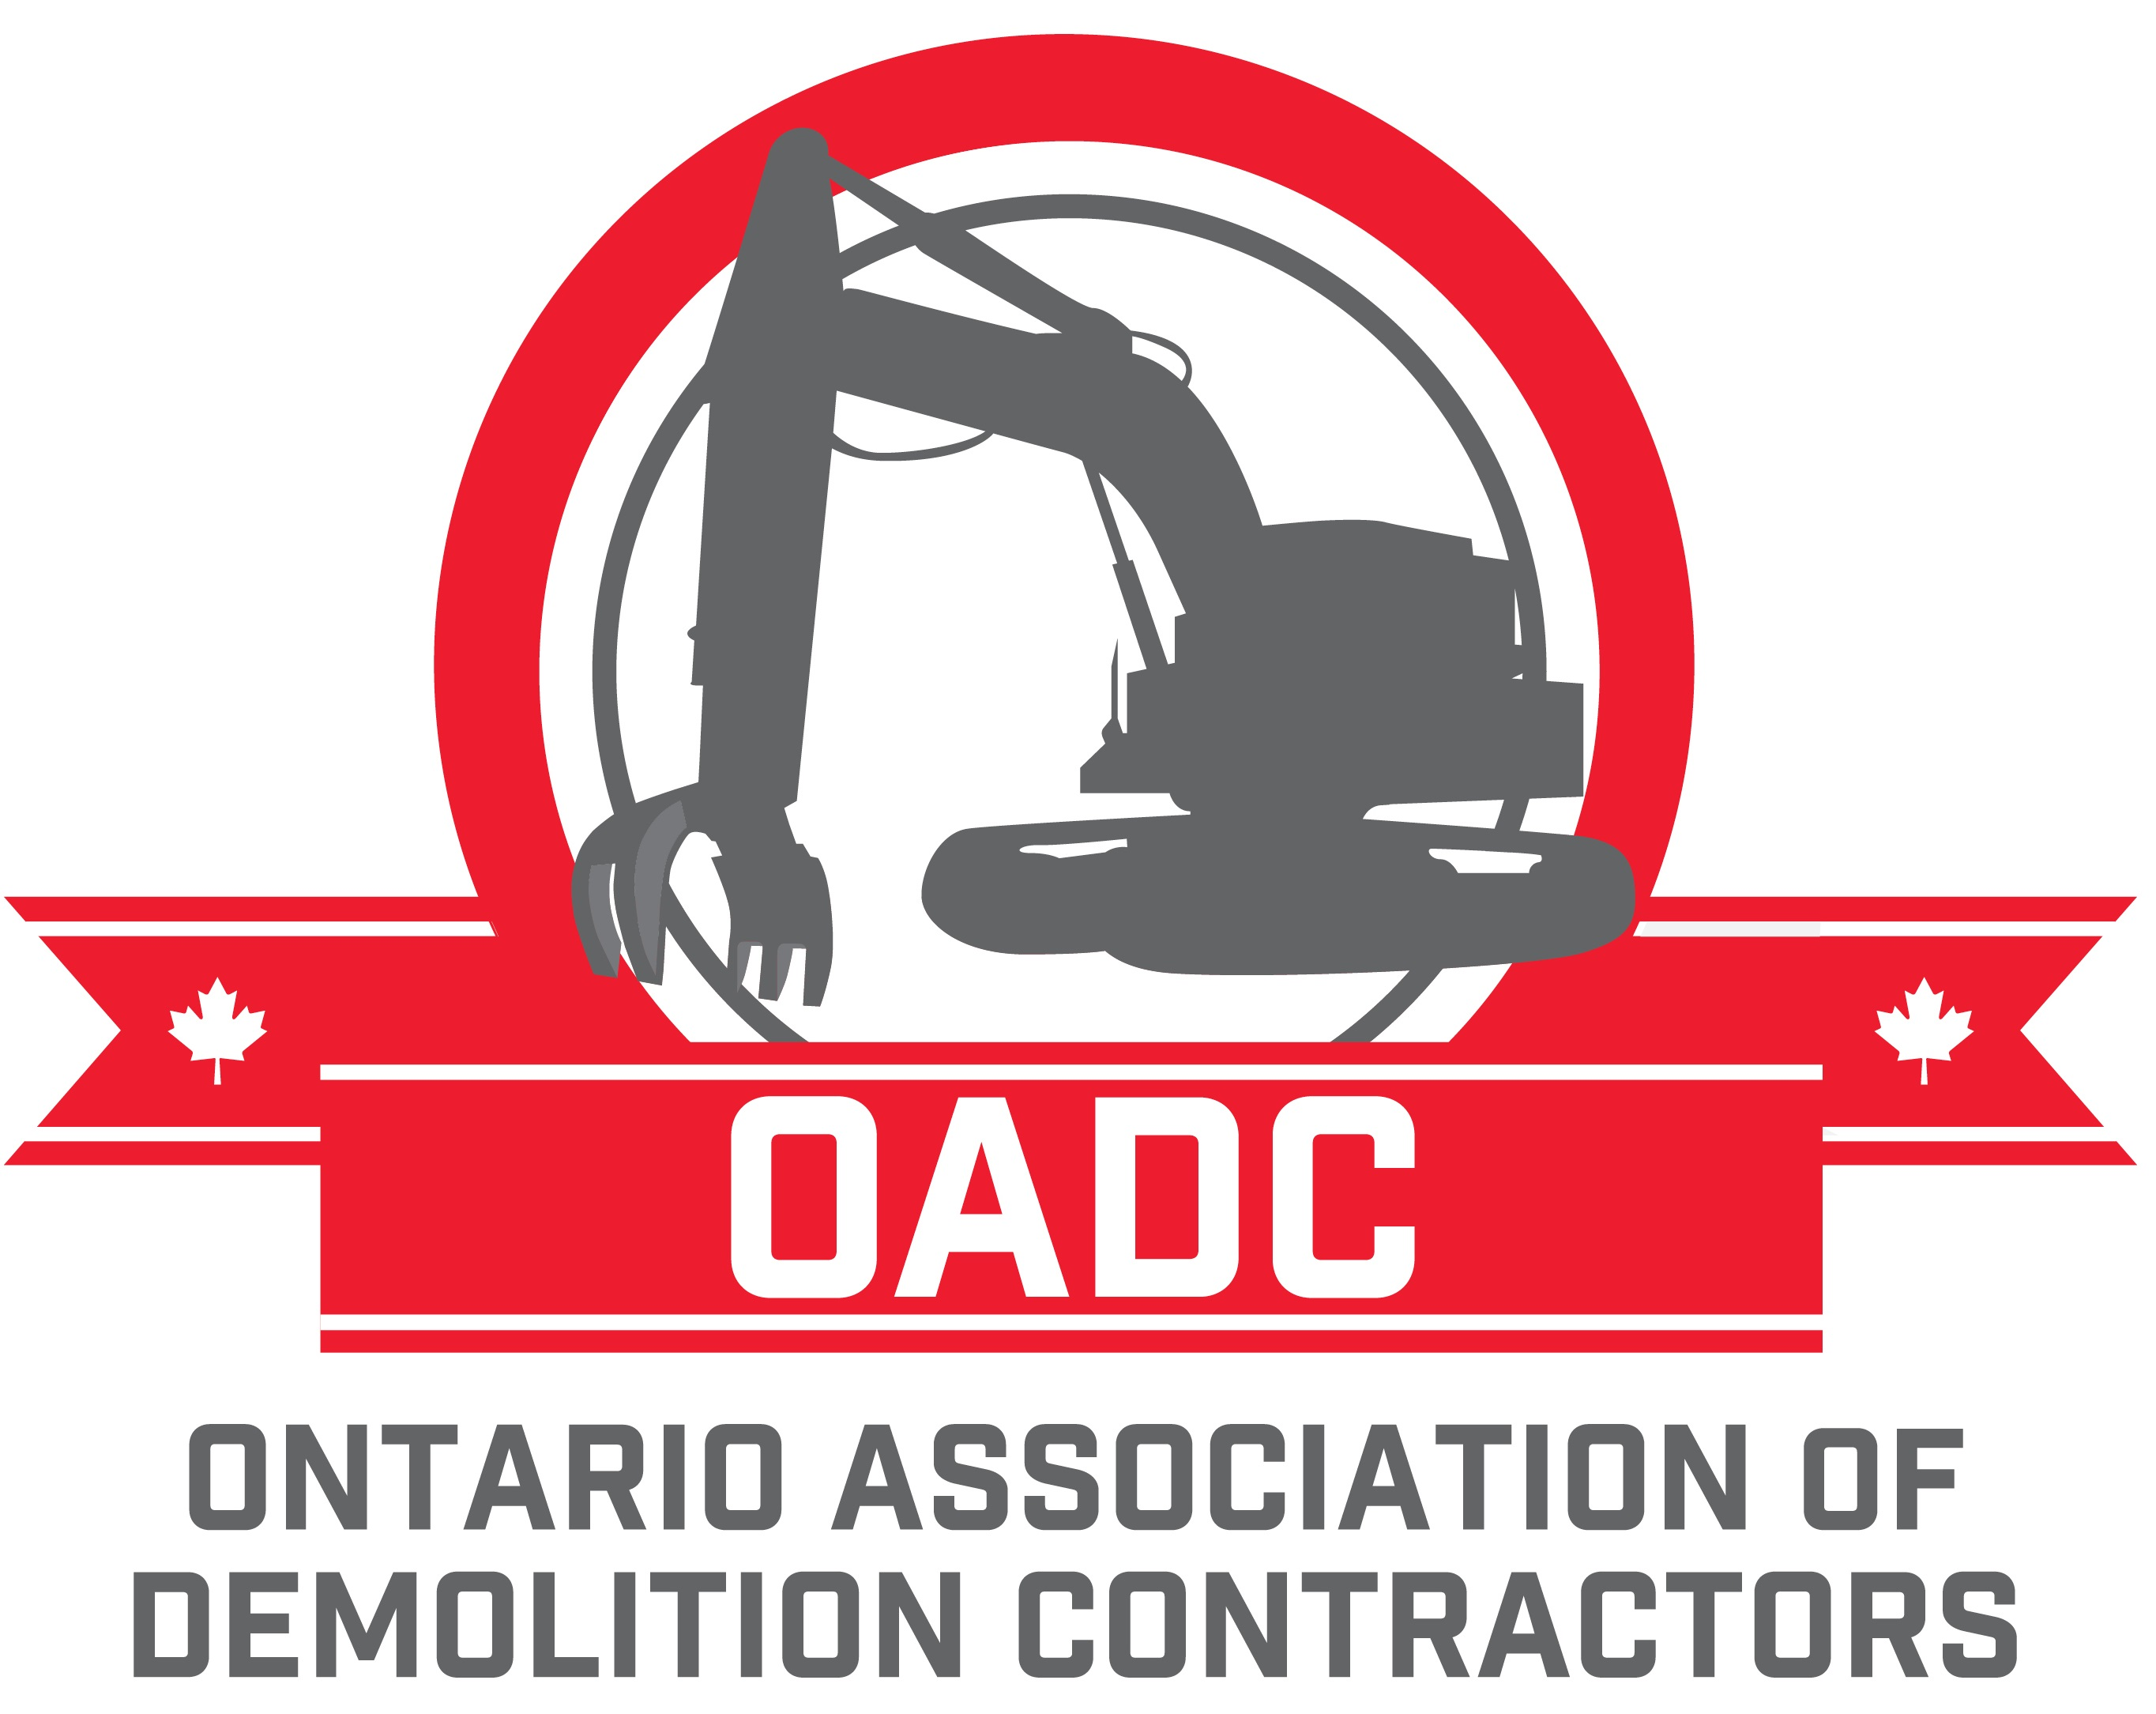 Ontario Association of Demolition Contractors